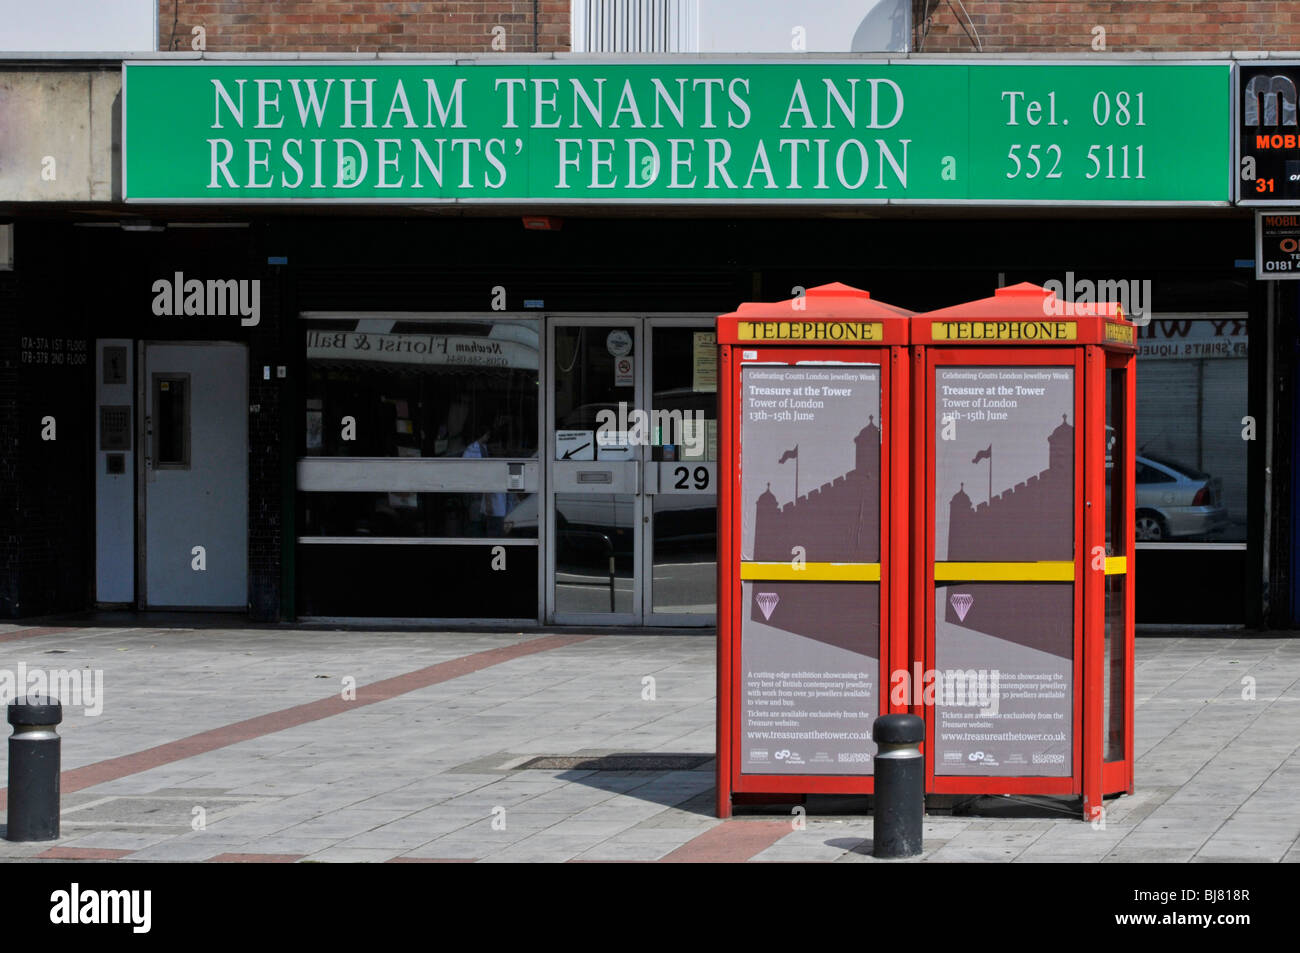 Newham Tenants and Residents Federation sign above premises - Stock Image